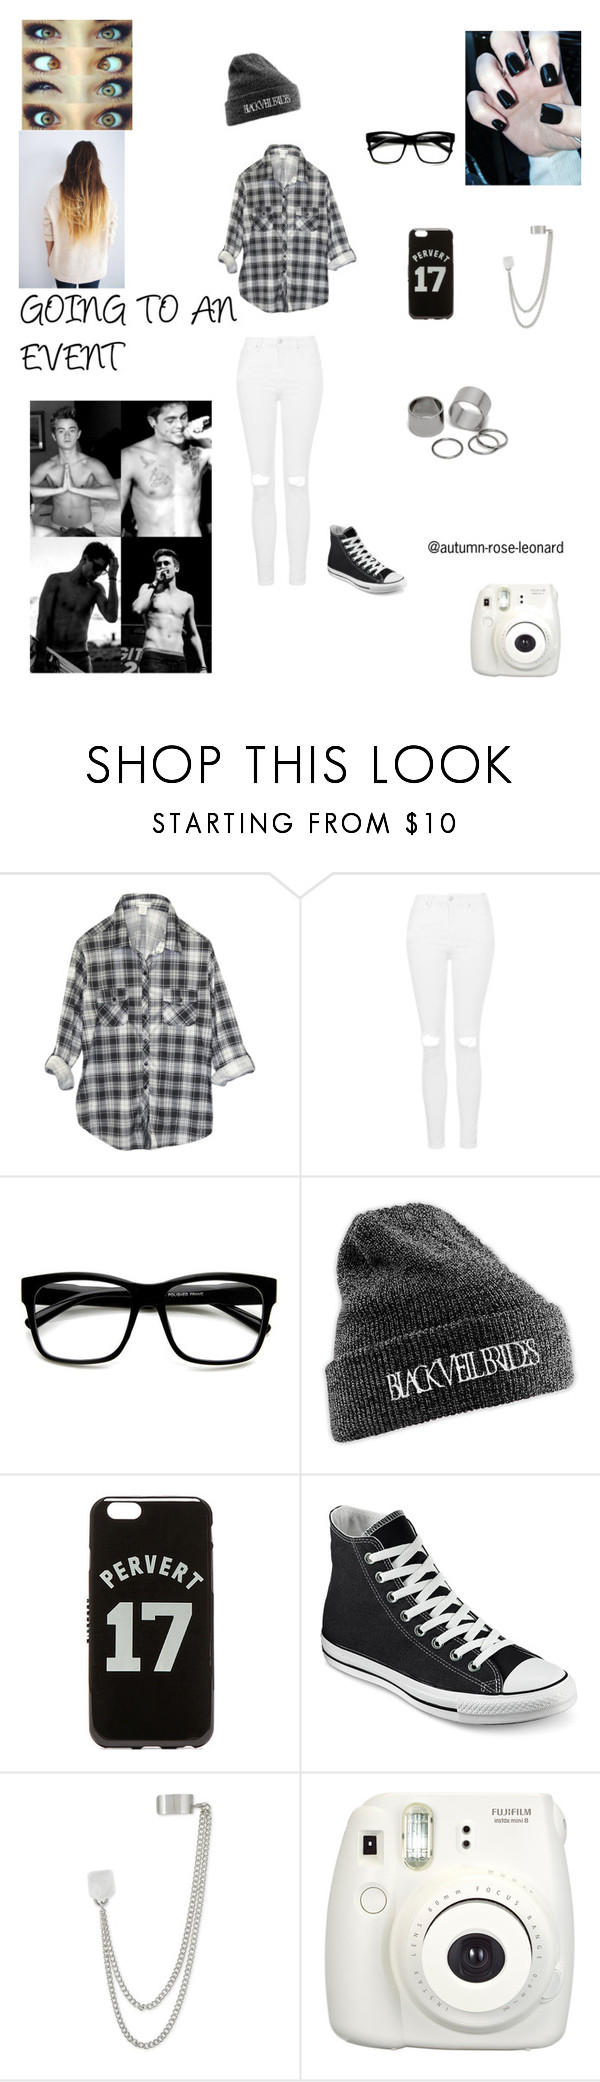 """GOING TO AN EVENT"" by autumn-rose-leonard ❤ liked on Polyvore featuring Wet Seal, Topshop, Retrò, Givenchy, Converse, French Connection, Pieces, women's clothing, women's fashion and women"